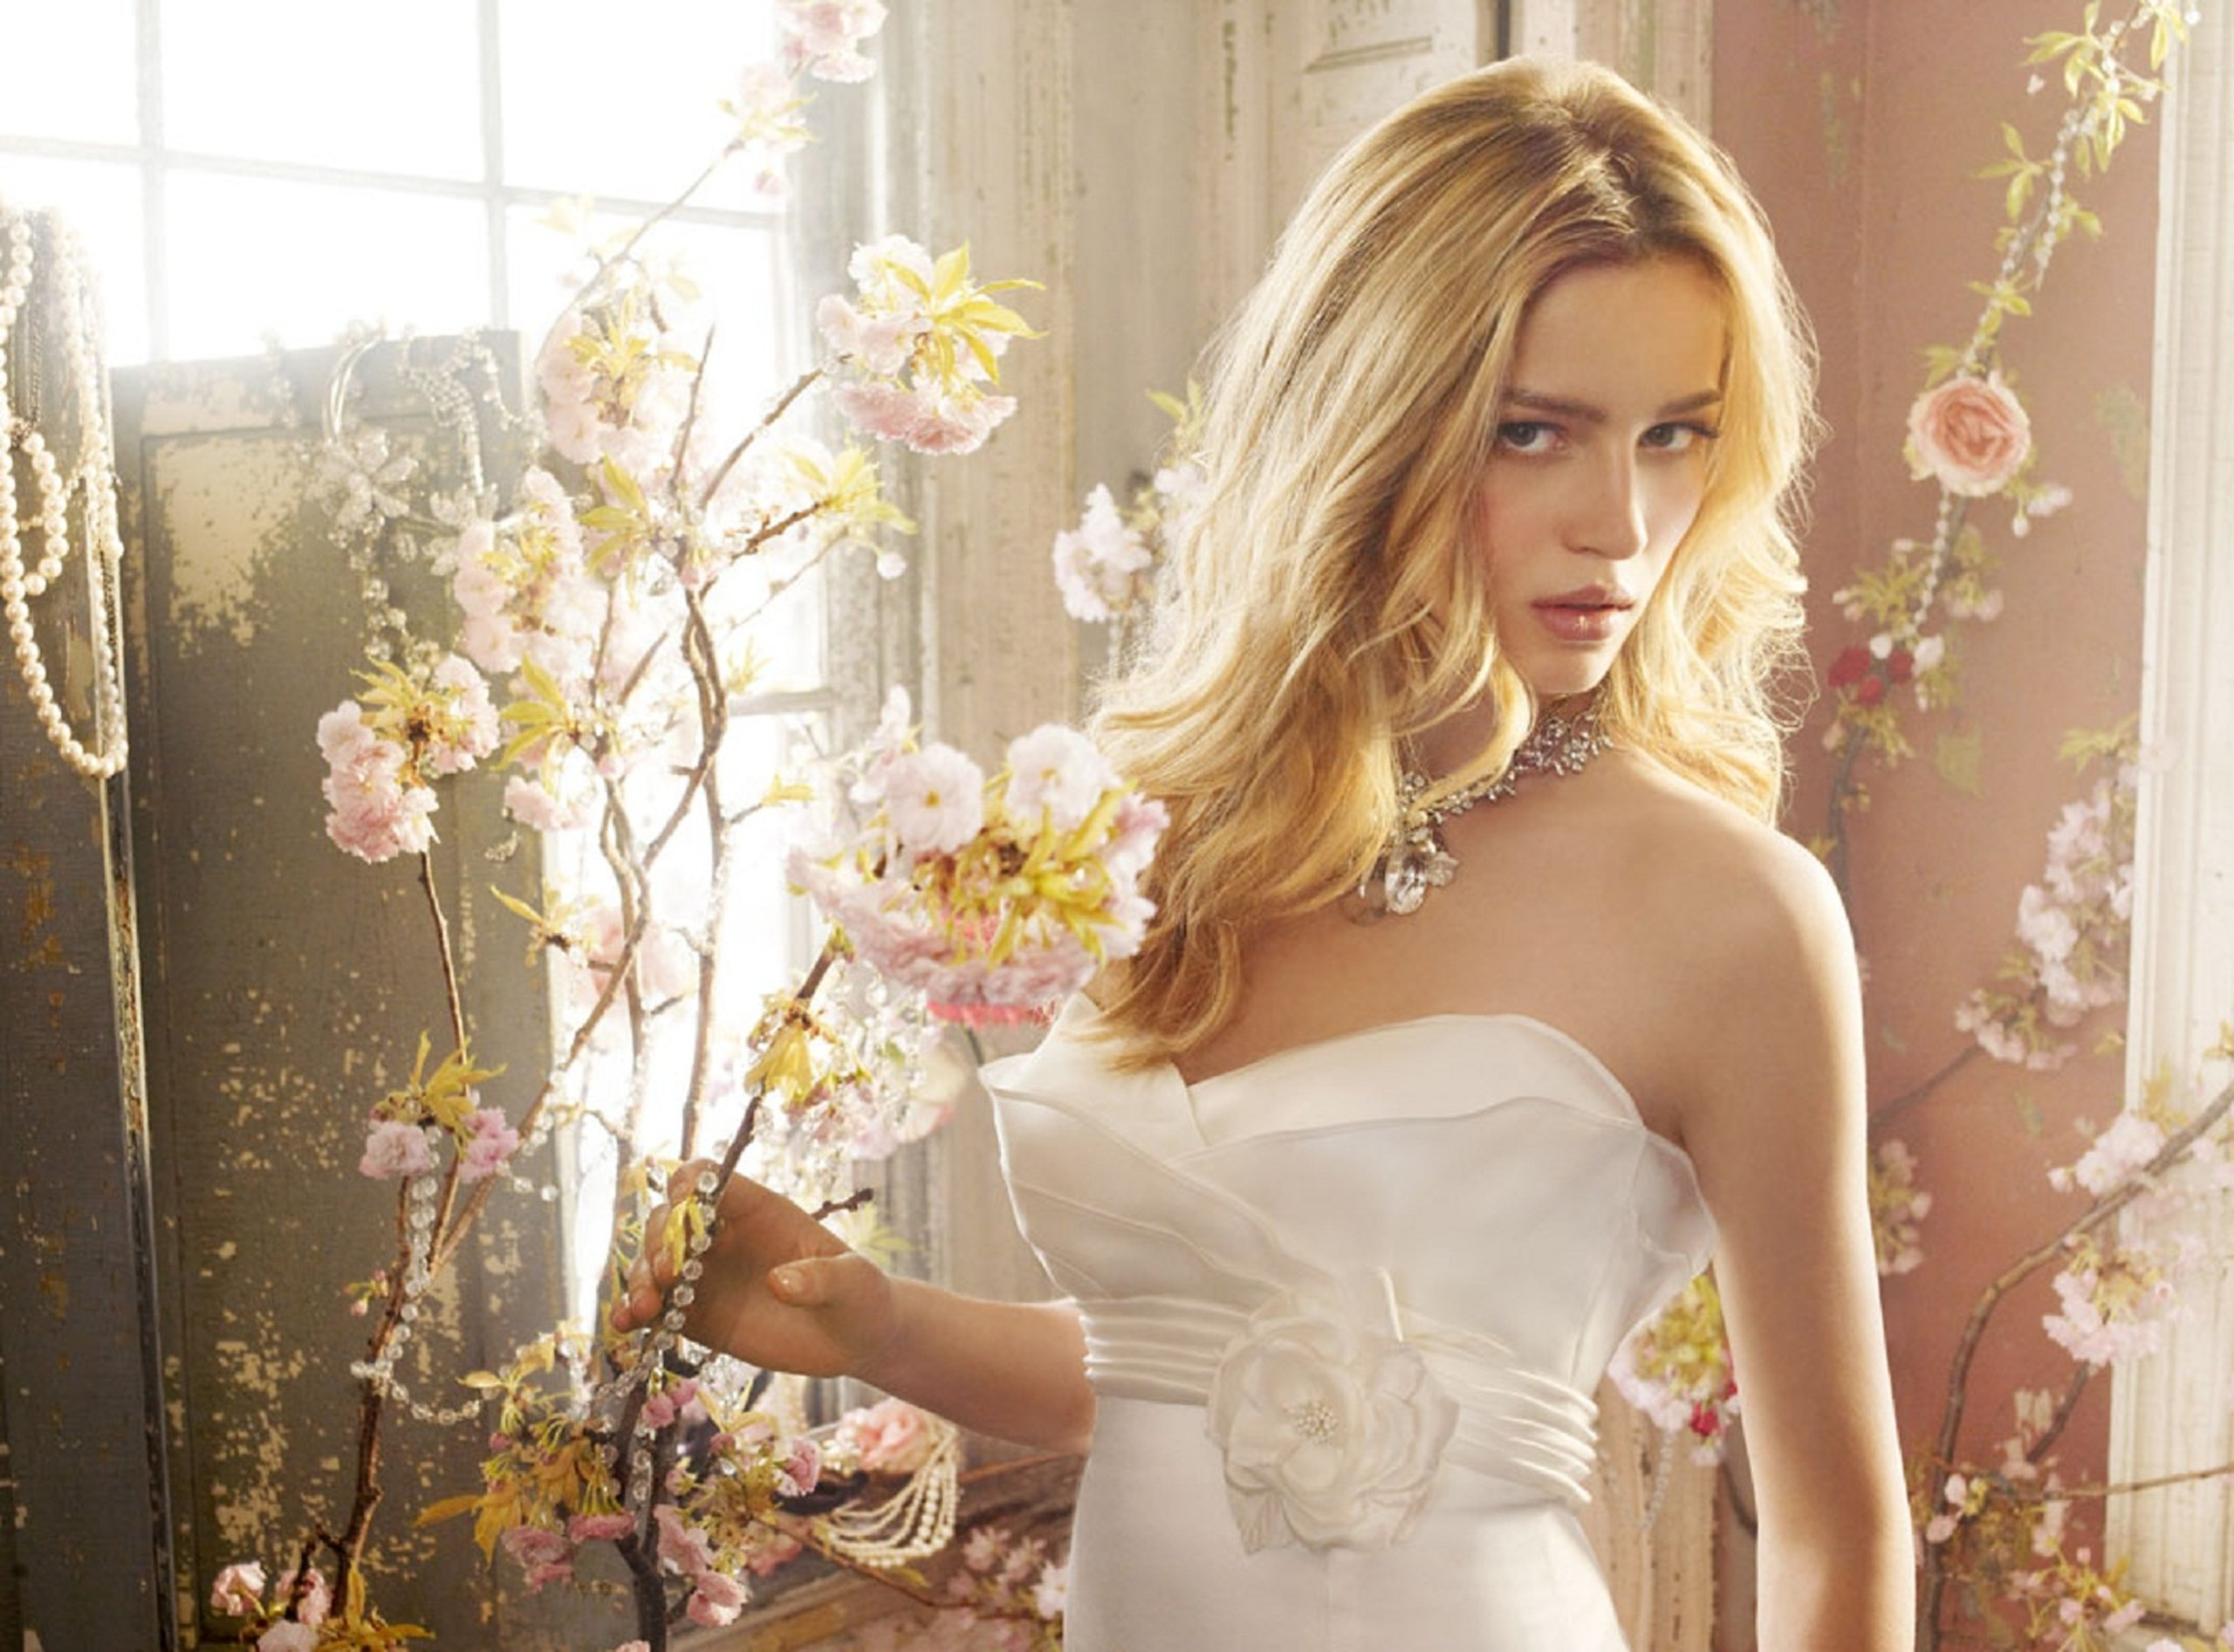 Isn't even Bride is pretty and